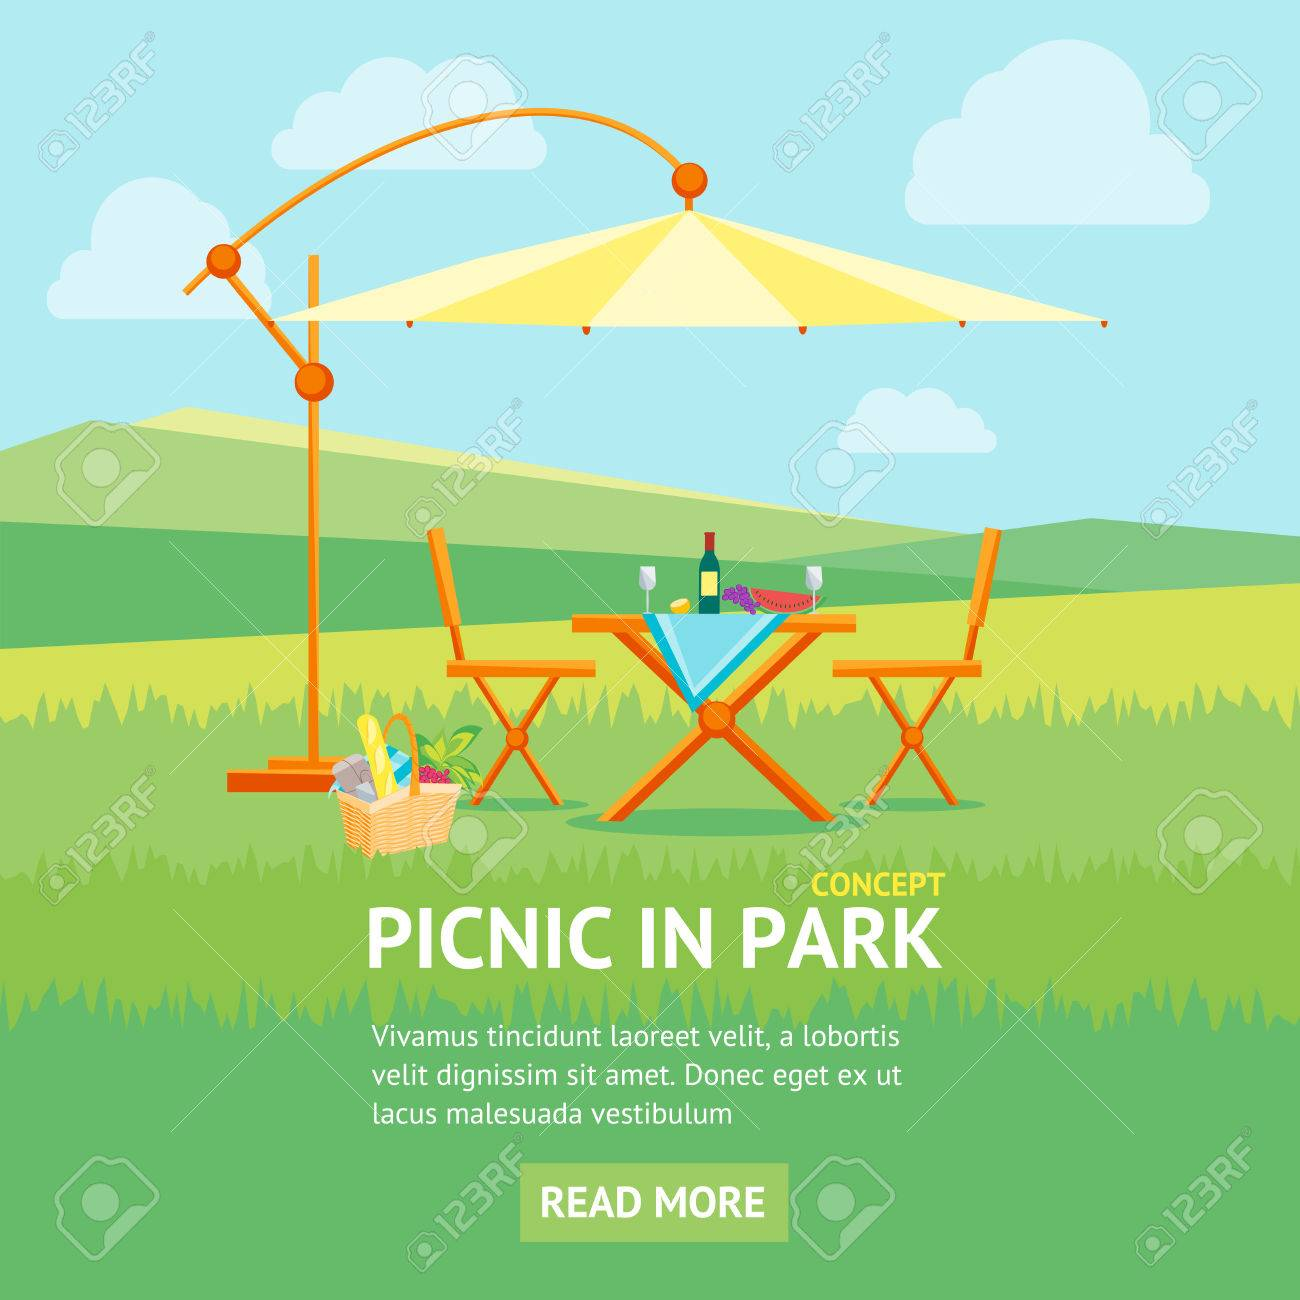 Summer Picnic In Park Banner Flat Design Style. Table, Chairs And Umbrella.  Outdoor